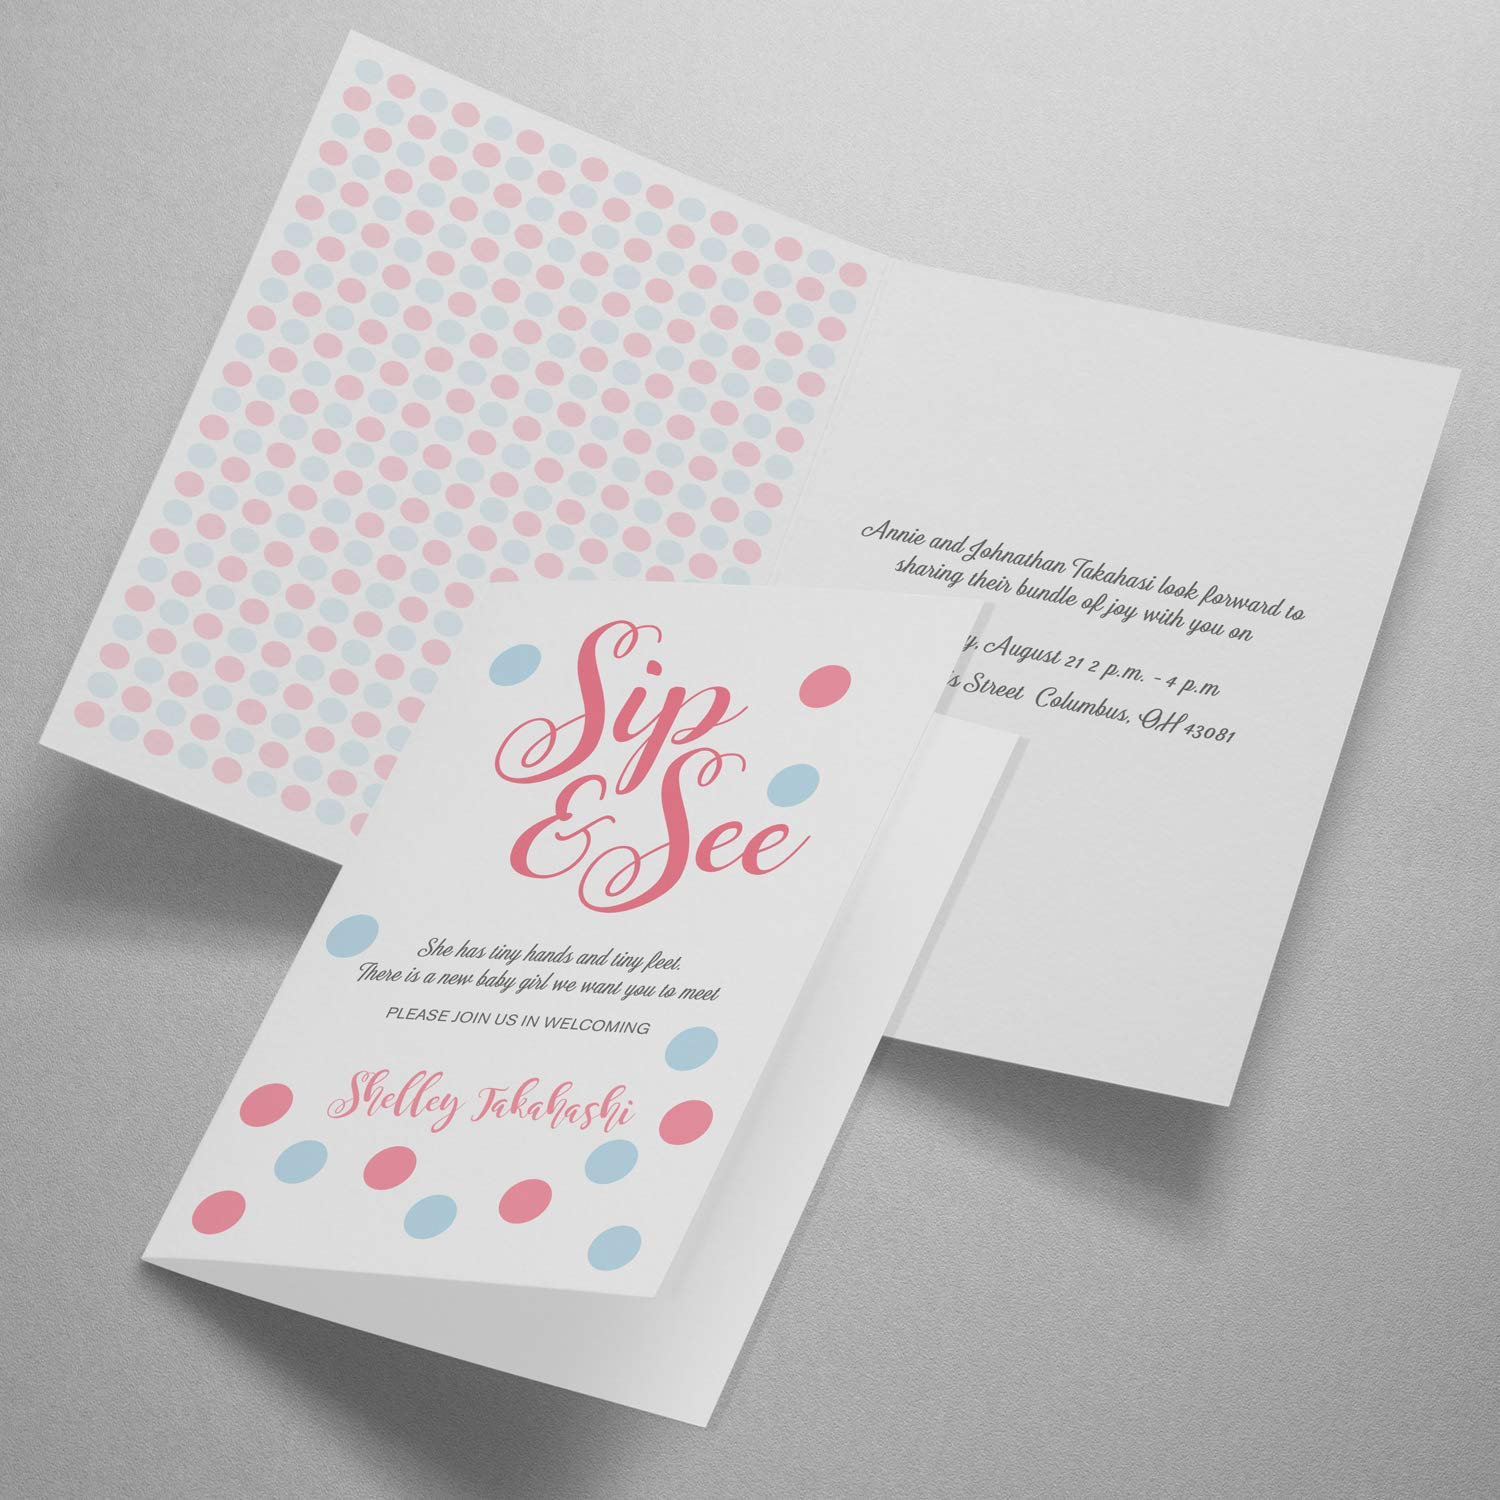 Avery 3265 Envelope Template Topsimages